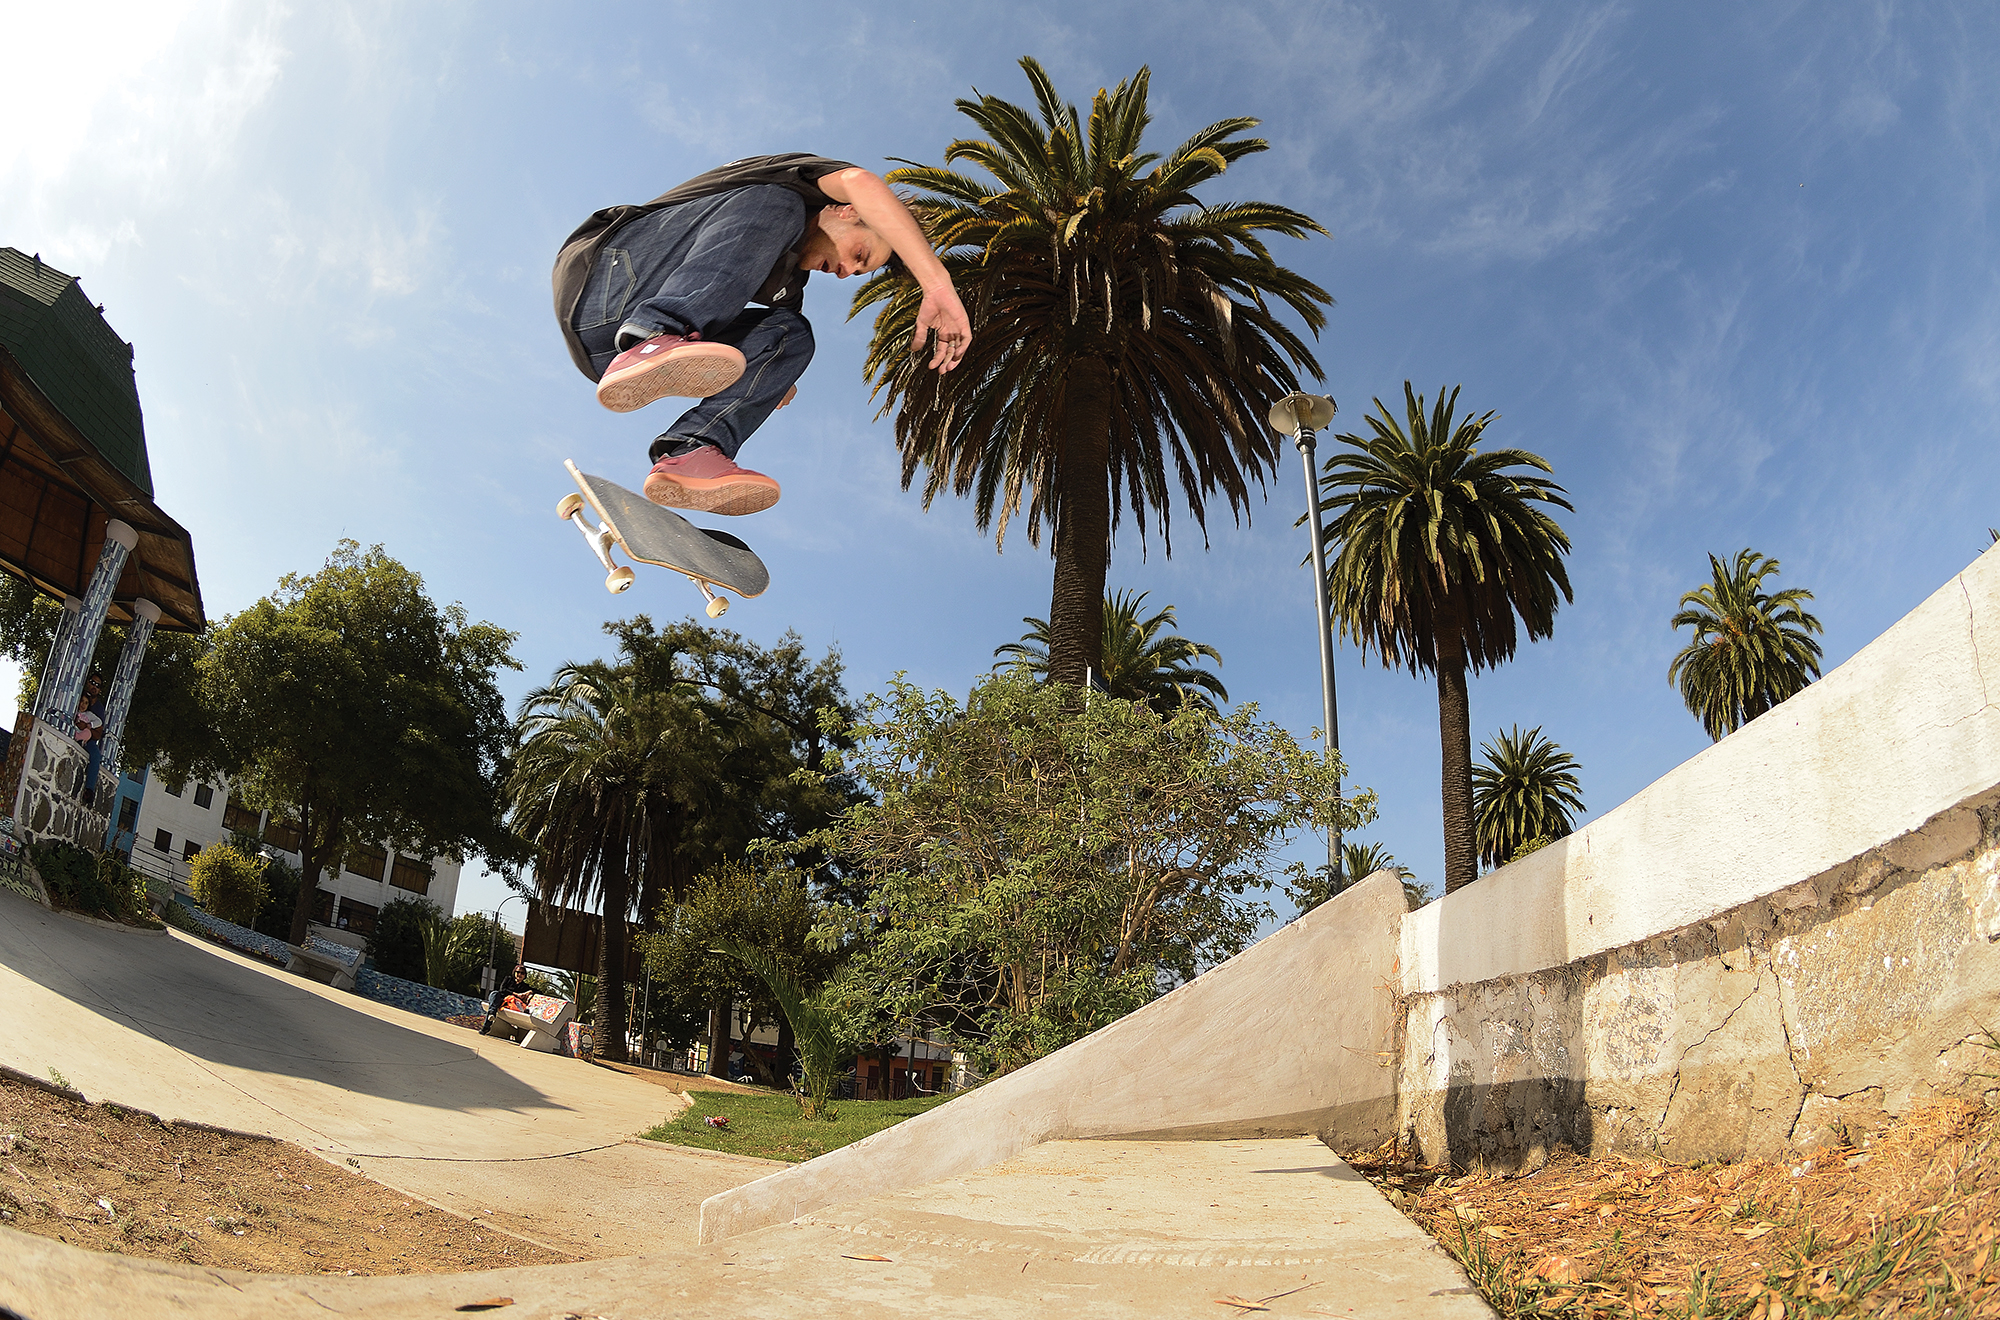 Carlos Iqui_Nollie Backside Flip